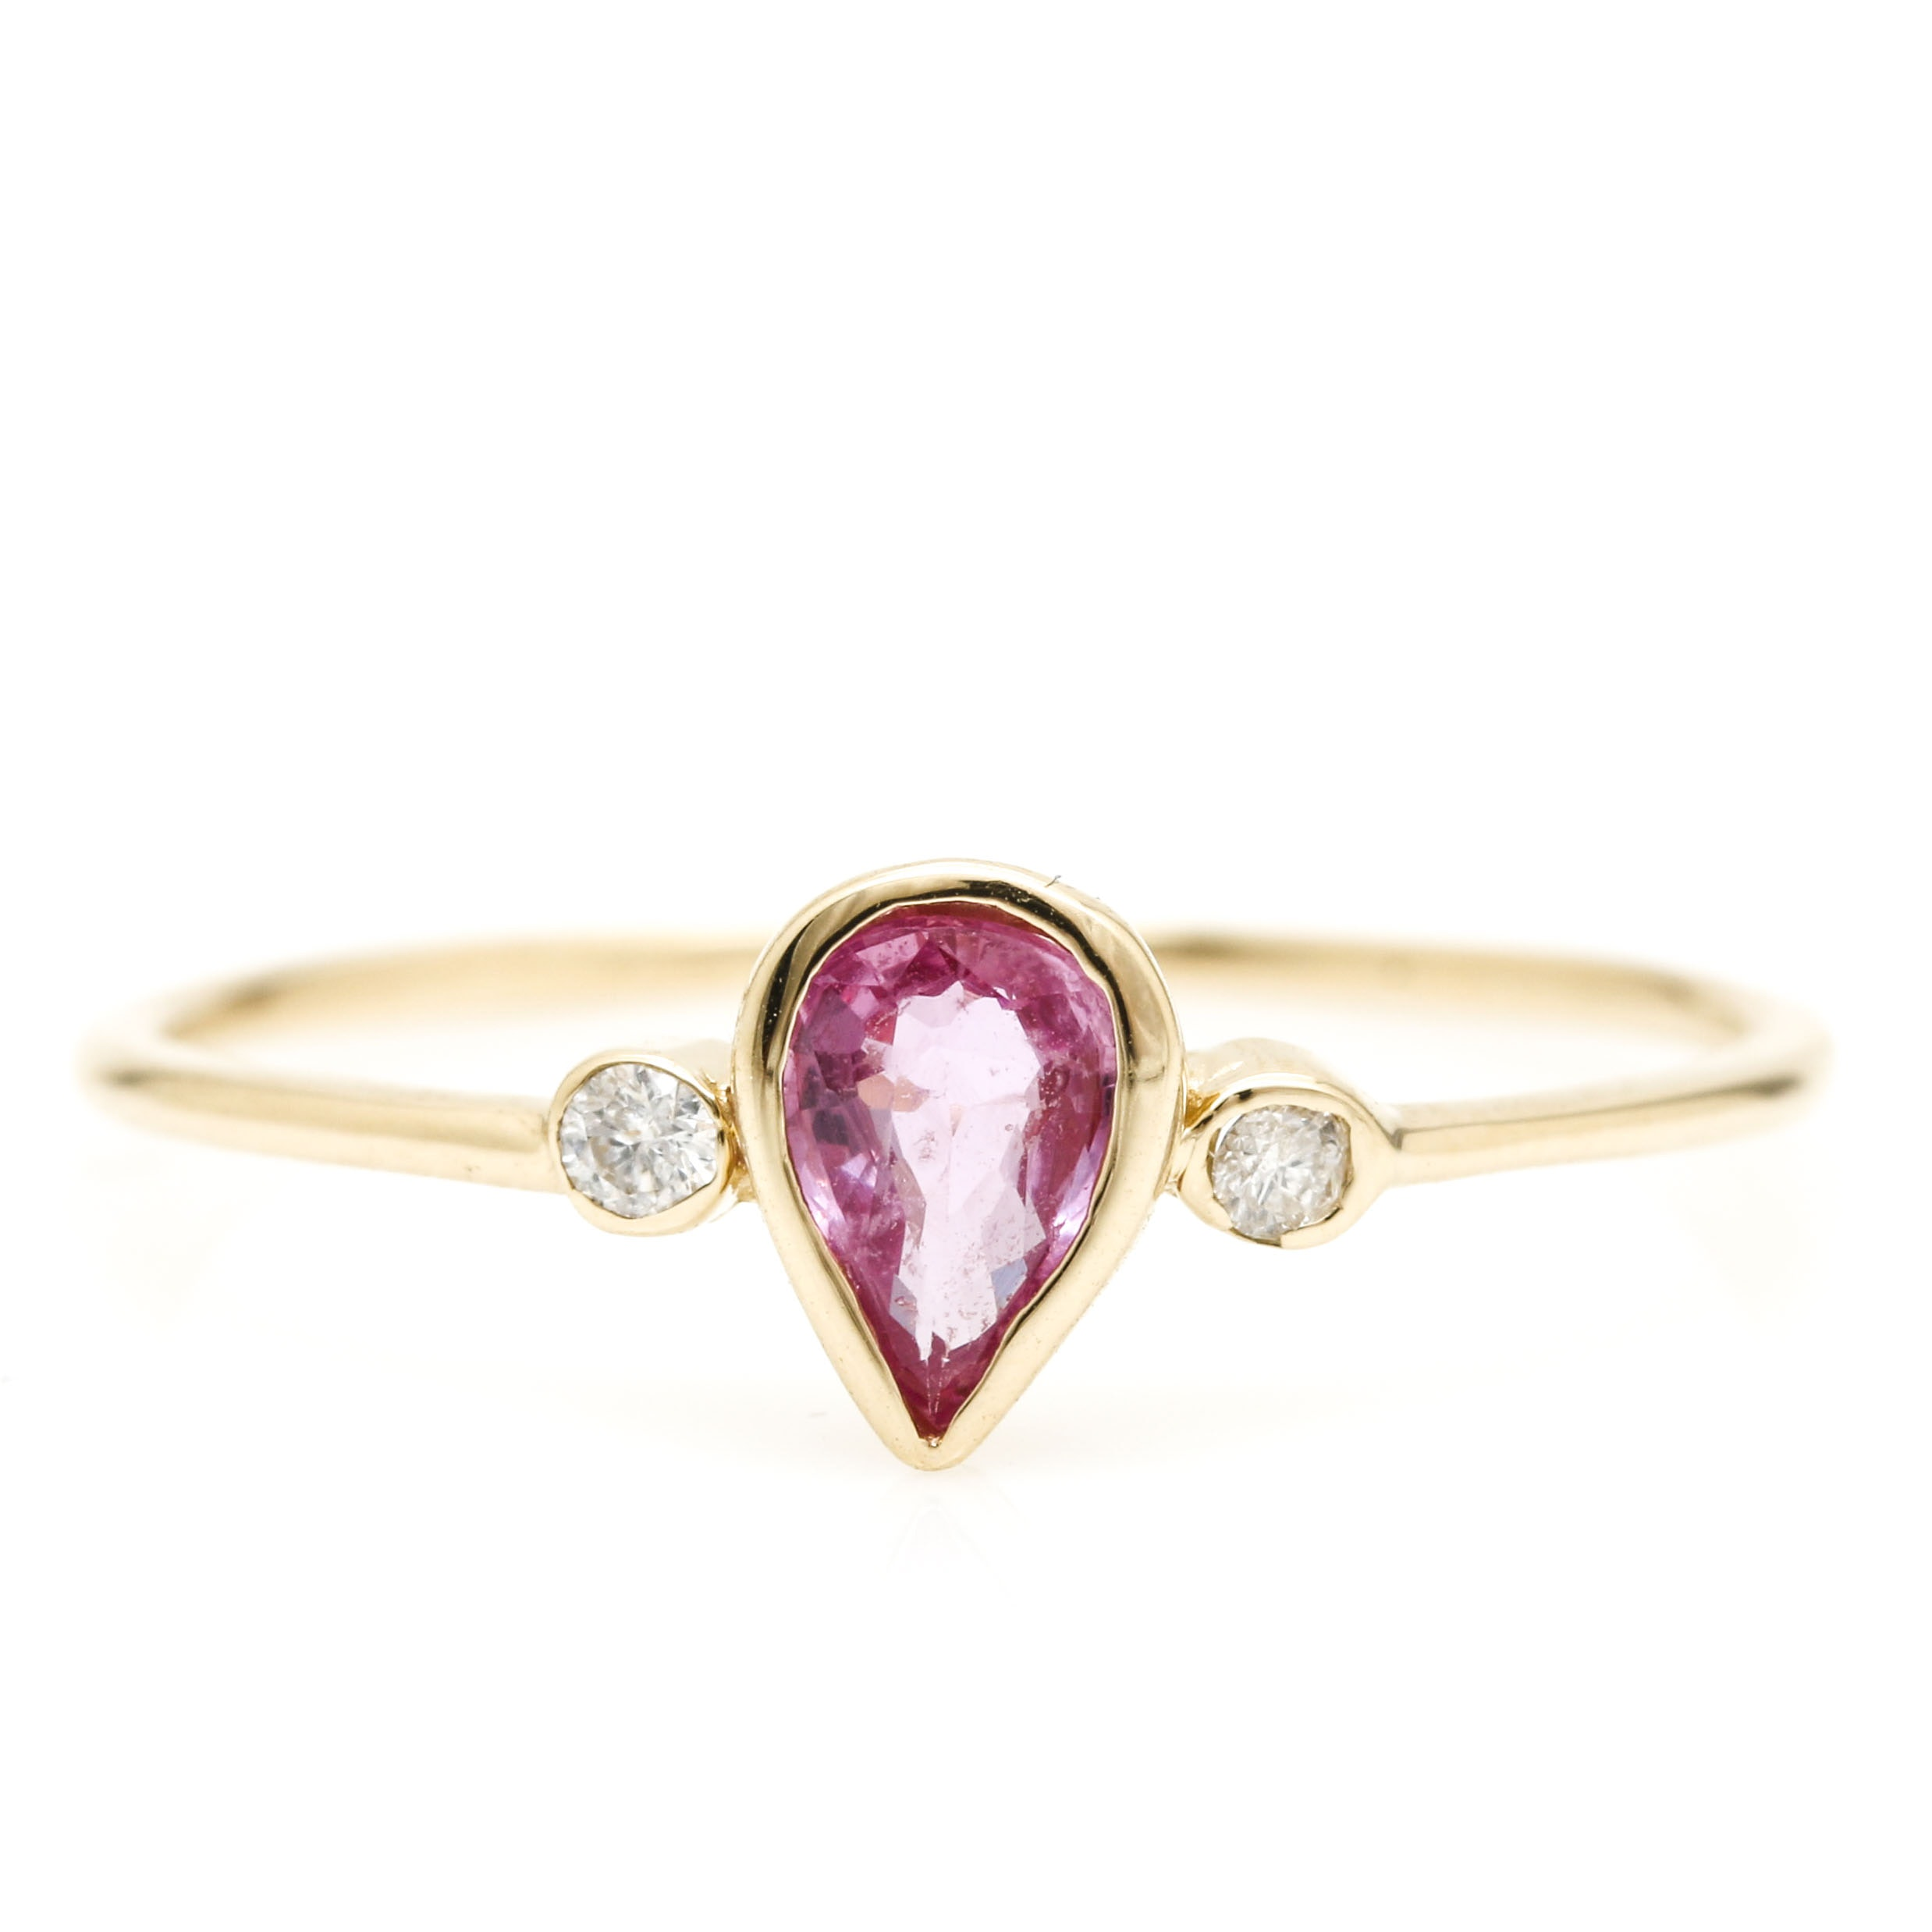 14K Yellow Gold Fancy Pink Sapphire and Diamond Ring